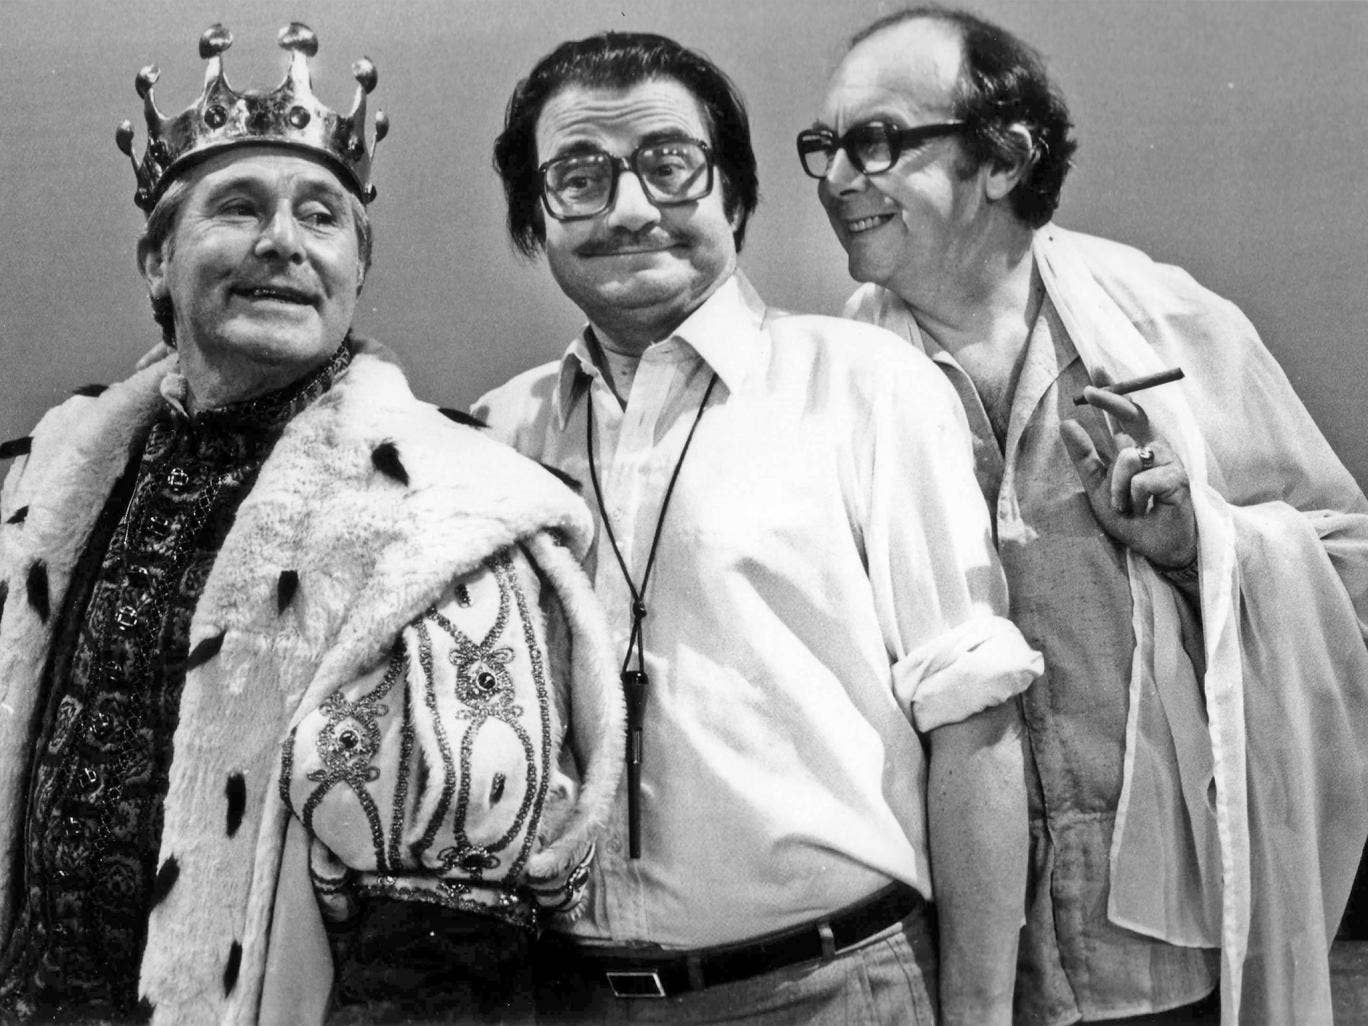 Ammonds (centre) on set with Ernie Wise and Eric Morecambe